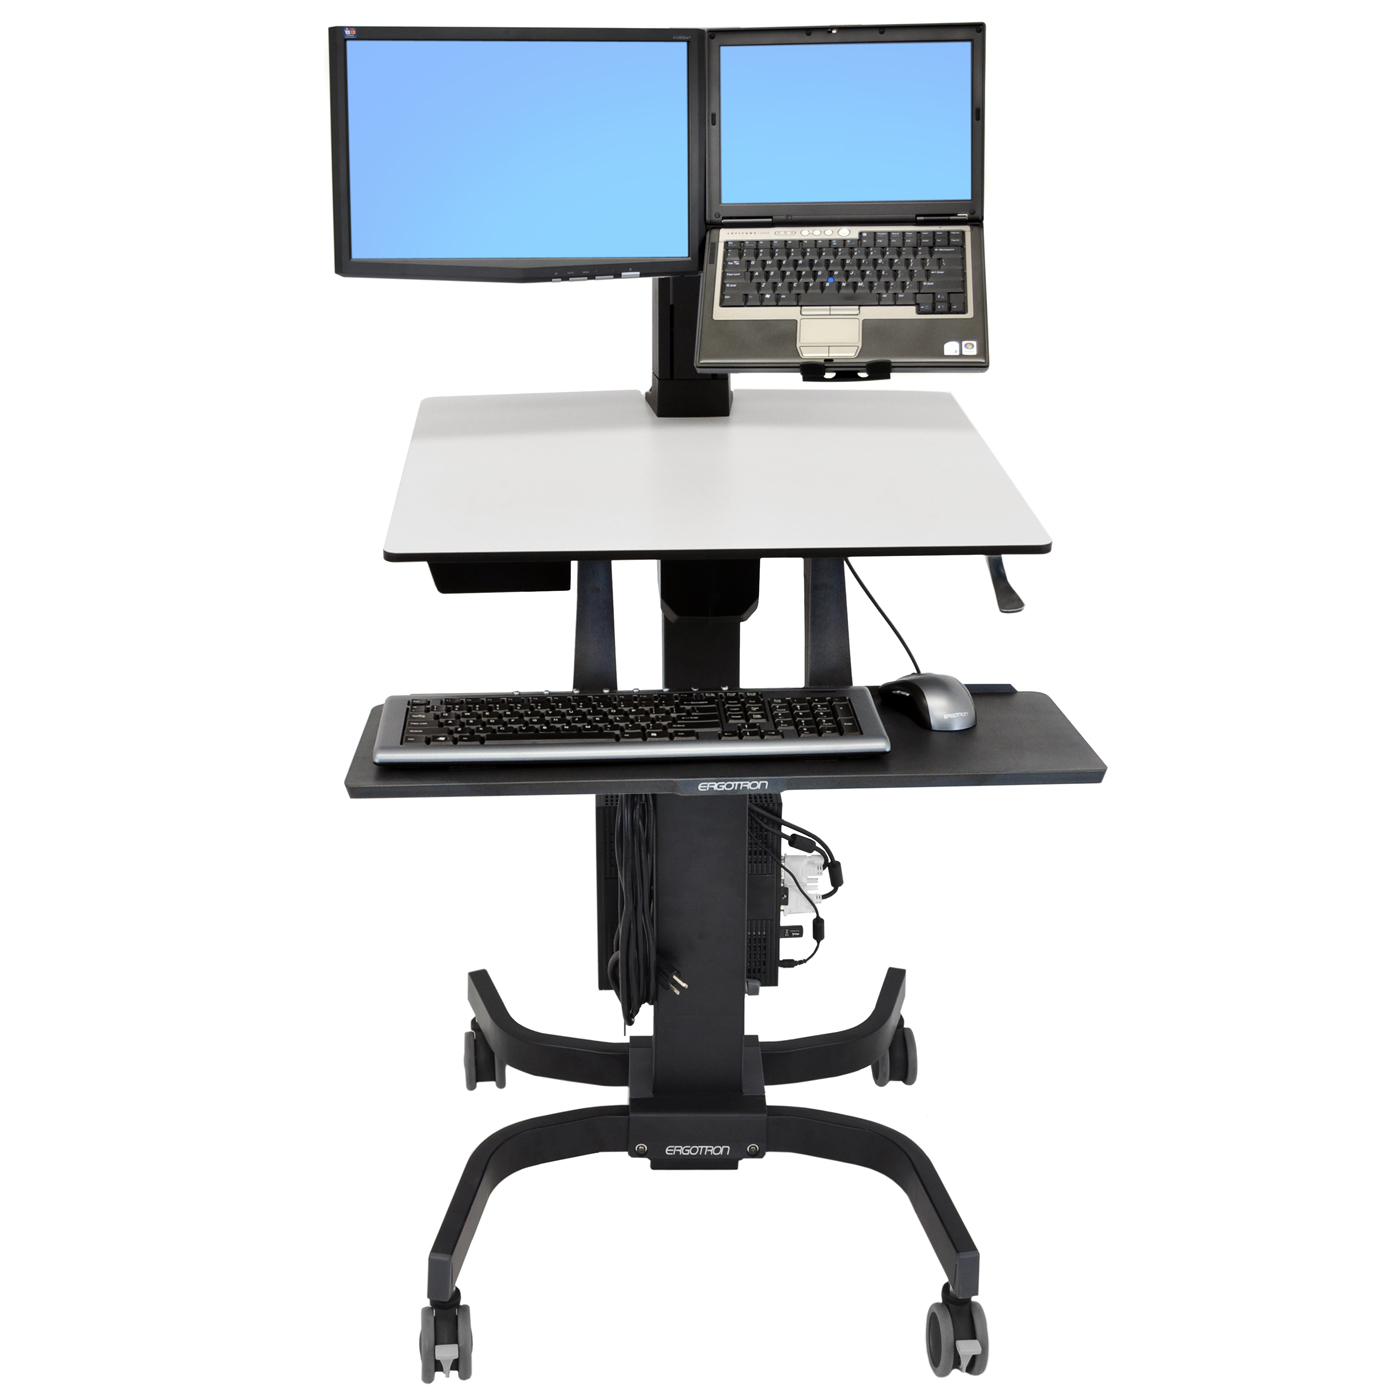 ergotron workfit c lcd laptop bras pied ergotron sur. Black Bedroom Furniture Sets. Home Design Ideas